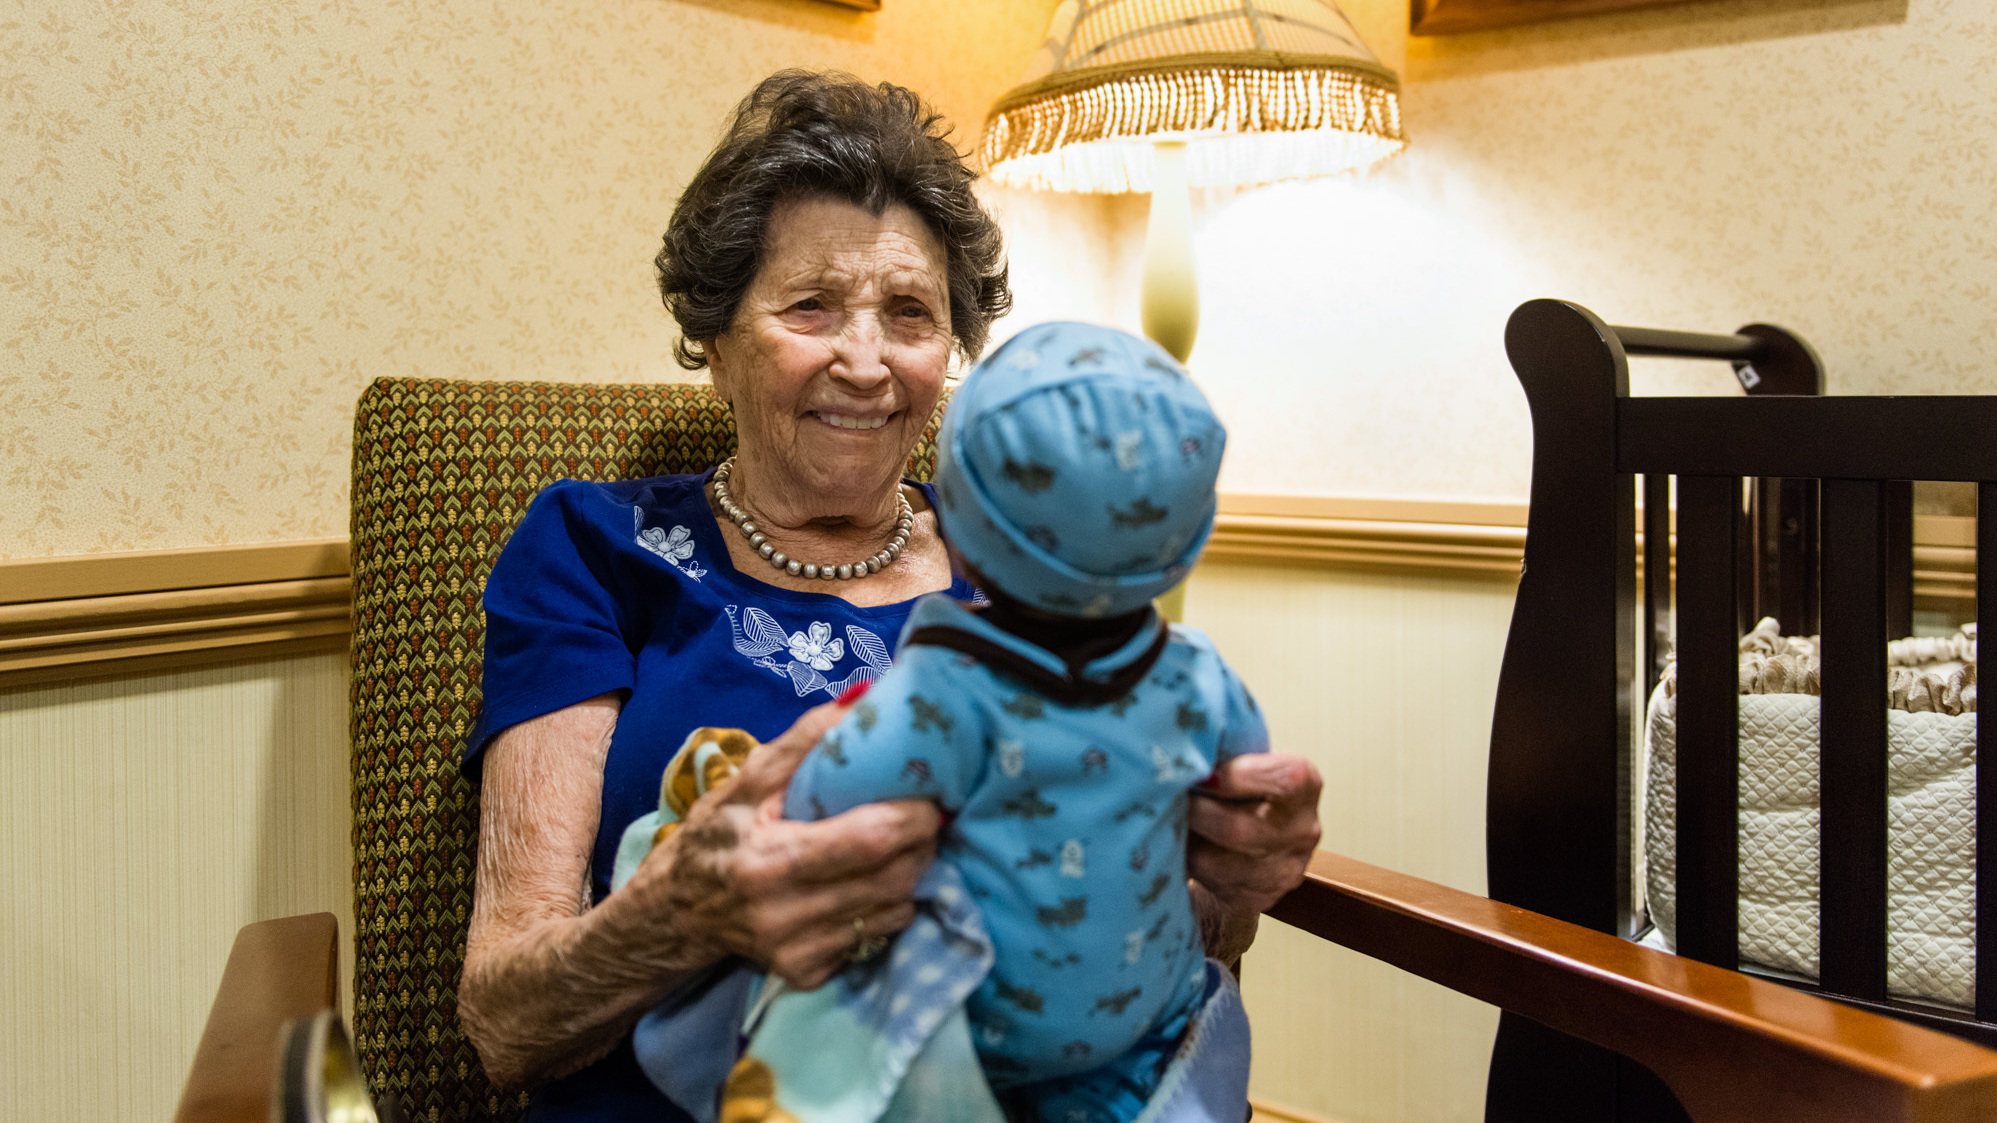 Doll Therapy For Alzheimers Calming Or Condescending